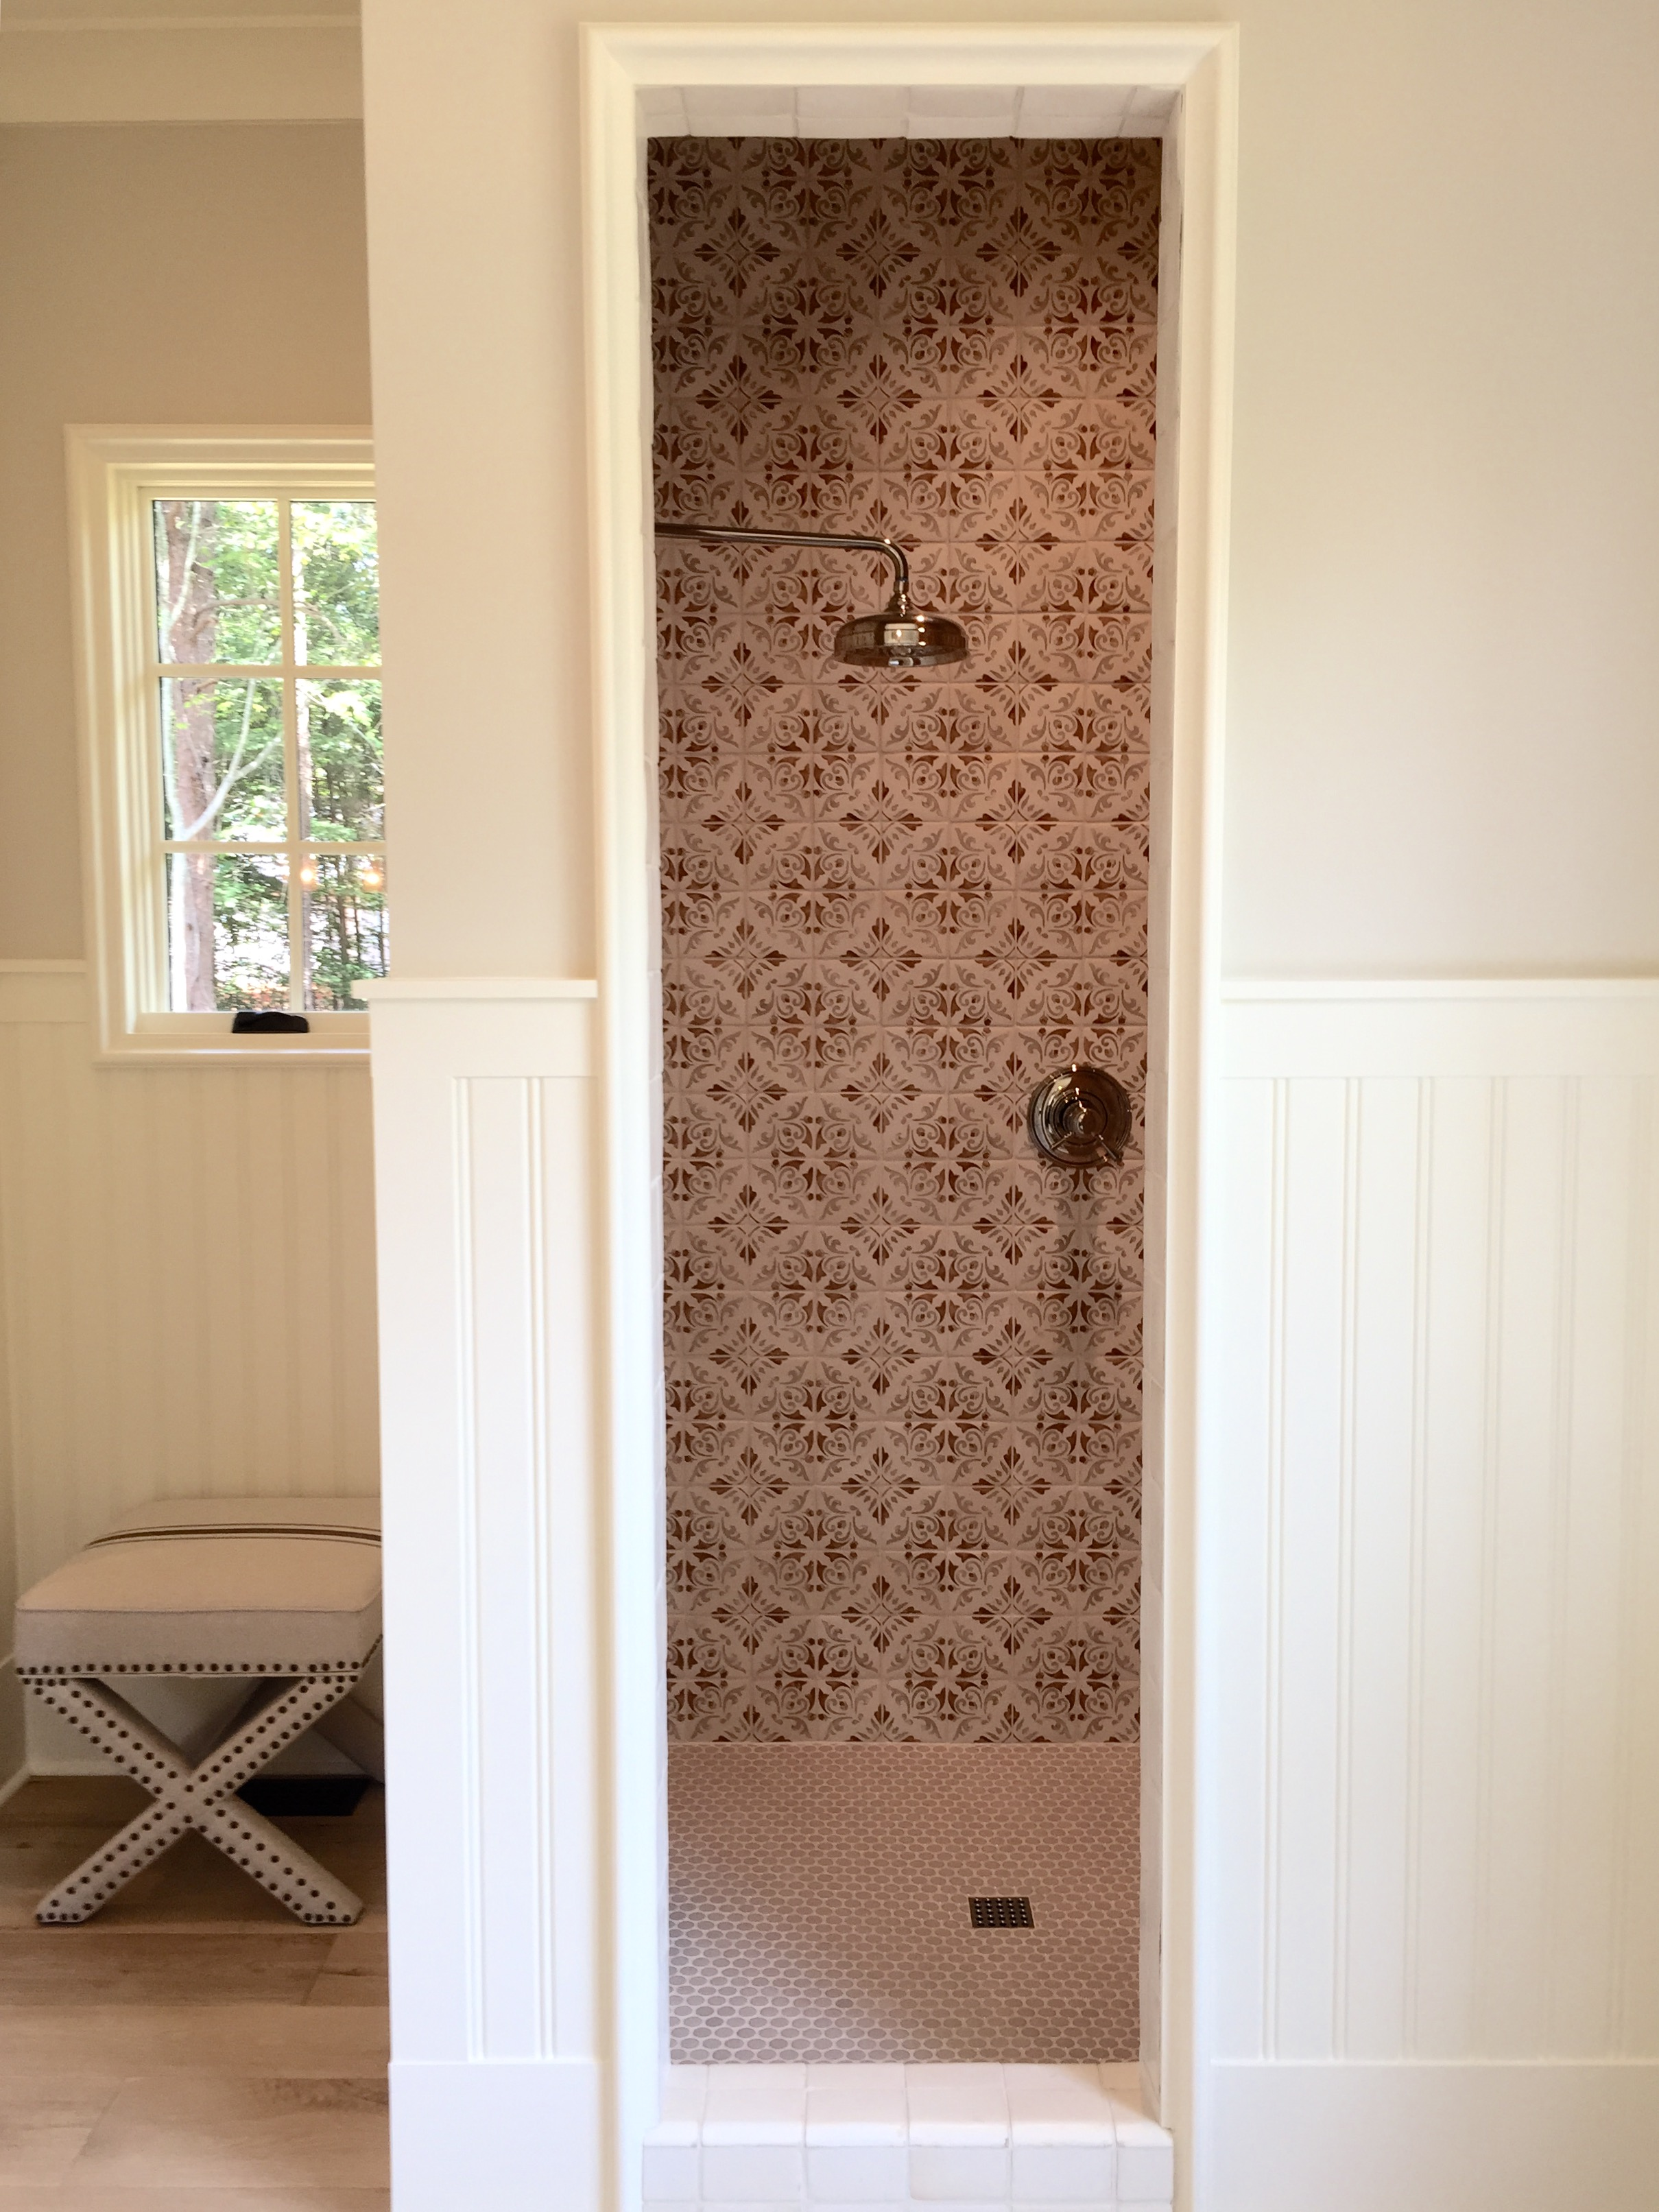 A deep red tile was the only pop of color in this otherwise white bathroom.